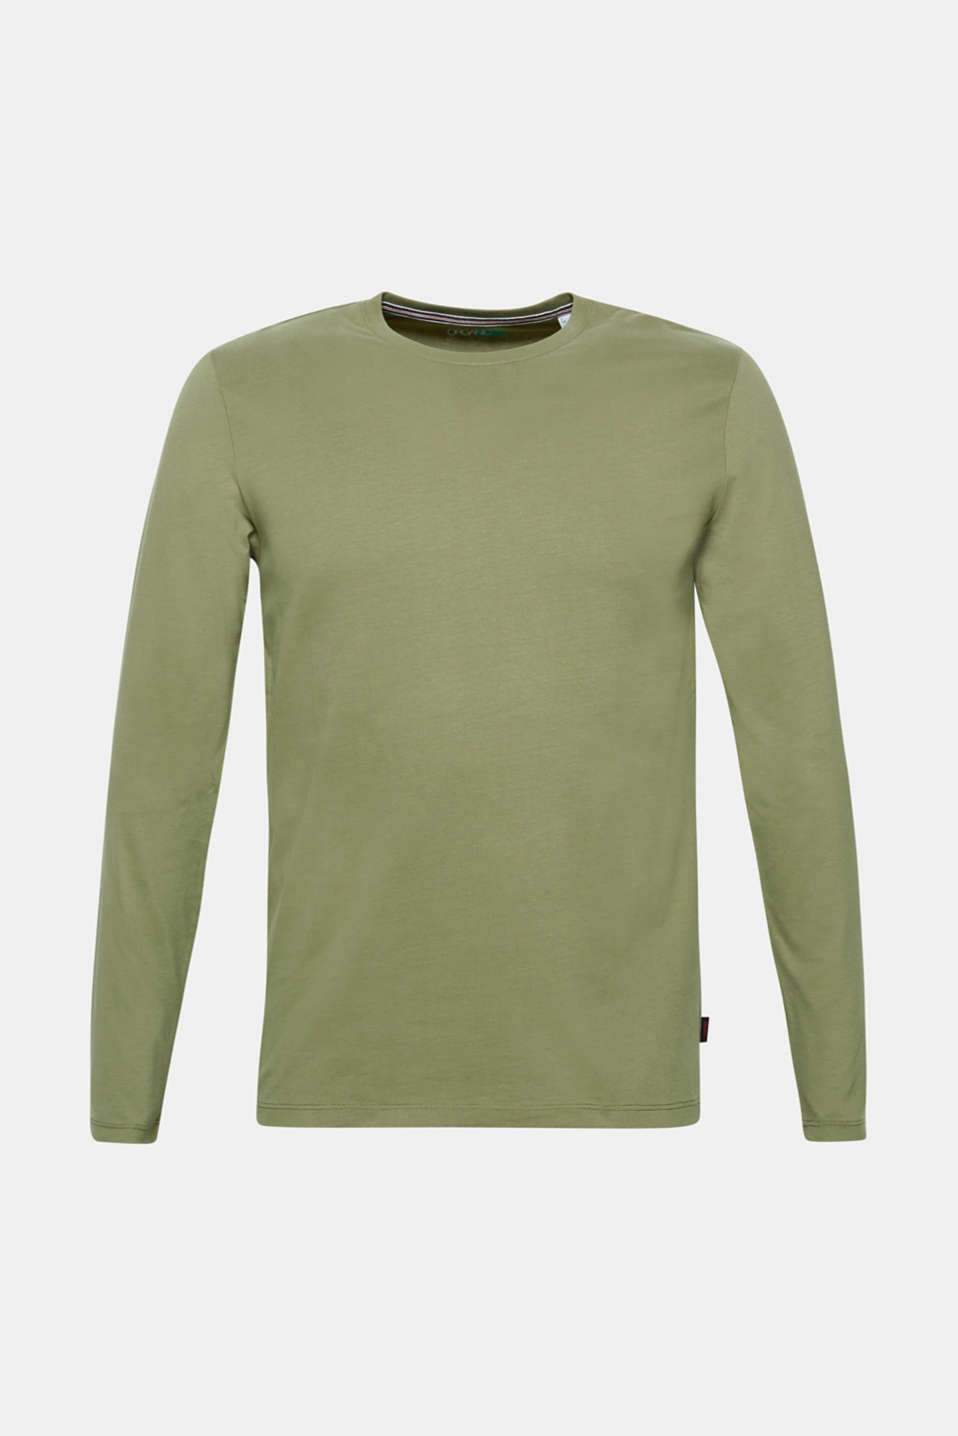 Long sleeve jersey top in 100% cotton, KHAKI GREEN, detail image number 7